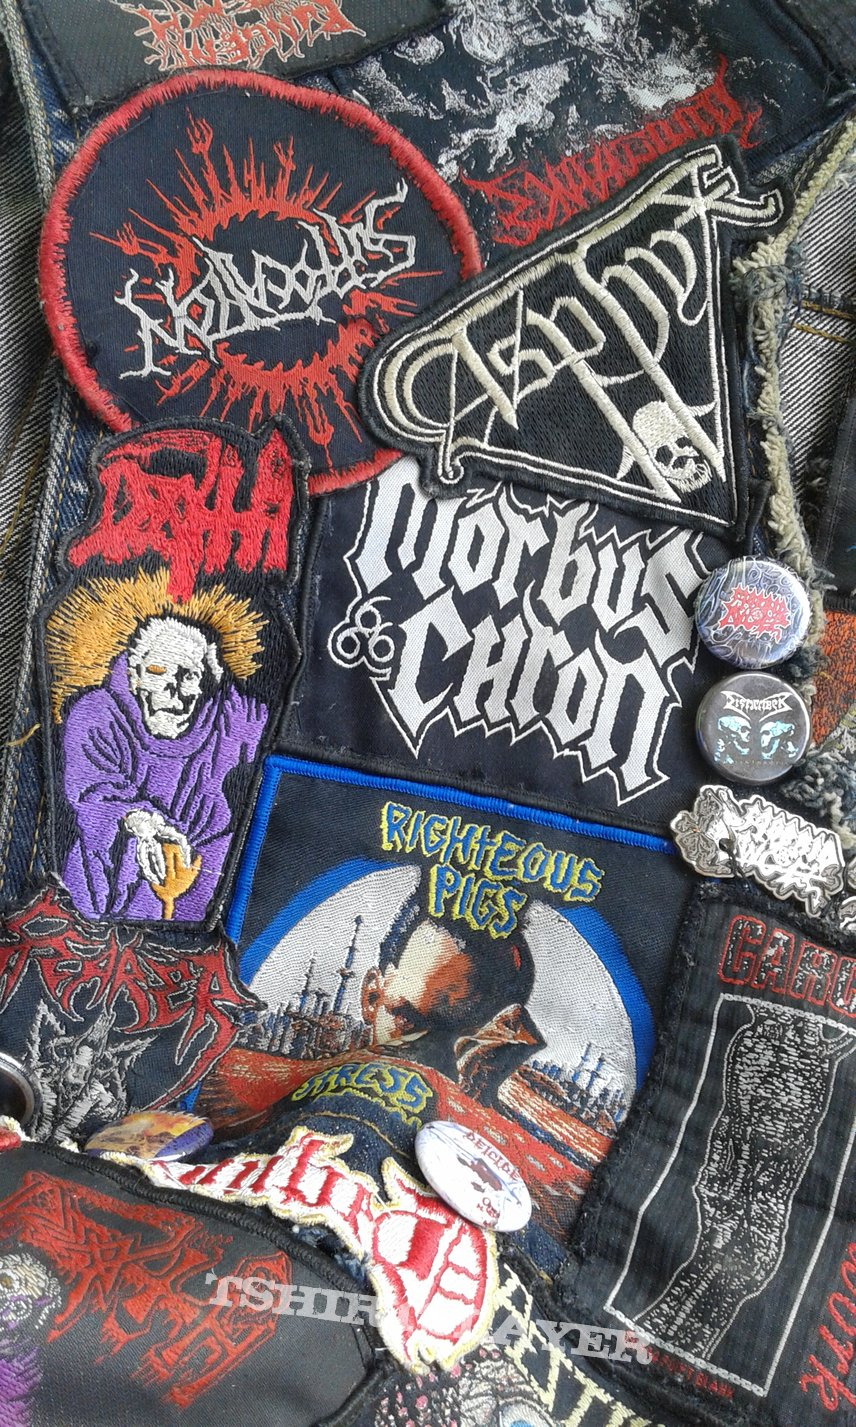 Death Metal vest update #3